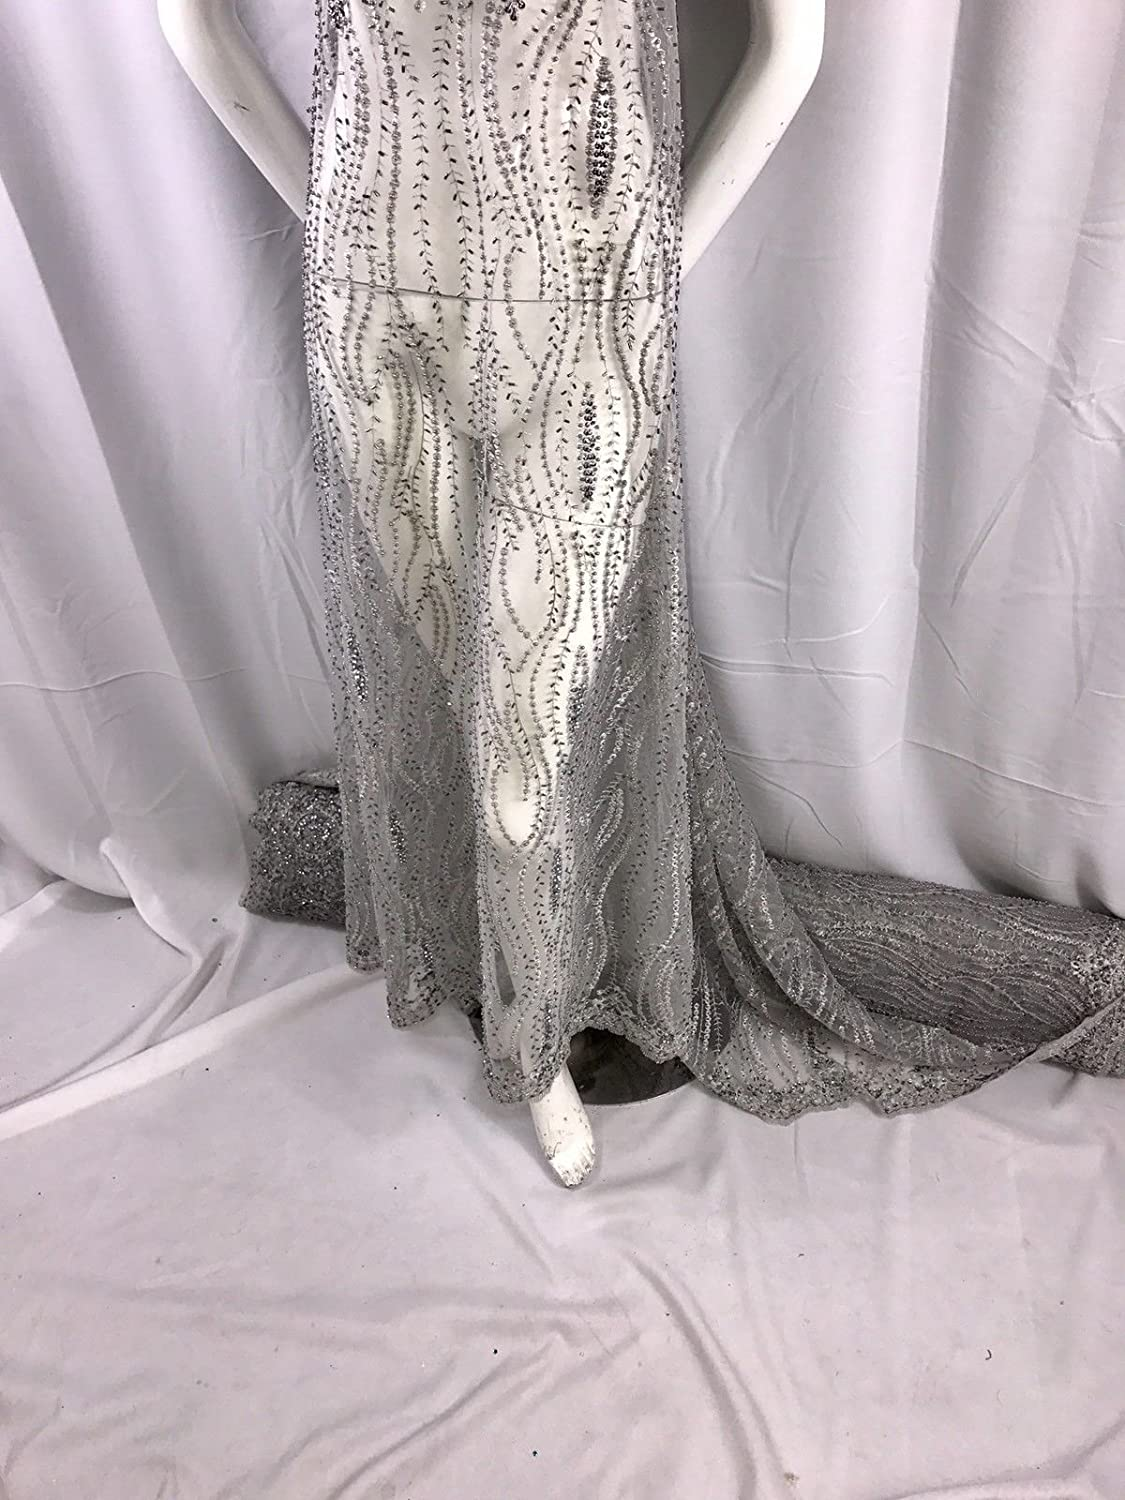 GRAY HAND BEADED LACE FABRIC EMBROIDER WITH METALLIC TREAD ON A MESH-BY THE YARD